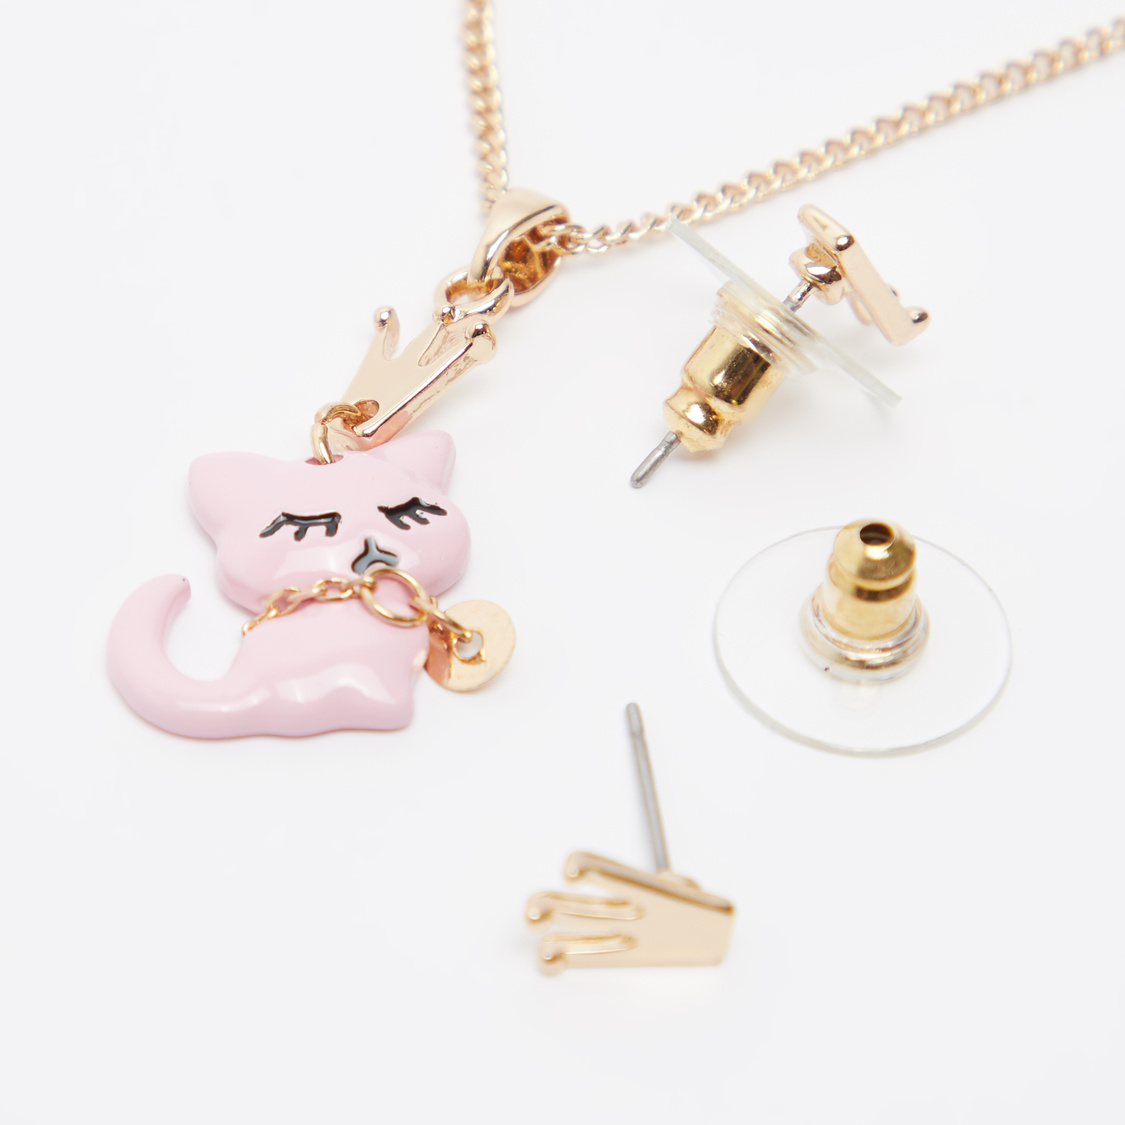 Kitty Pendant Necklace and Earrings Set